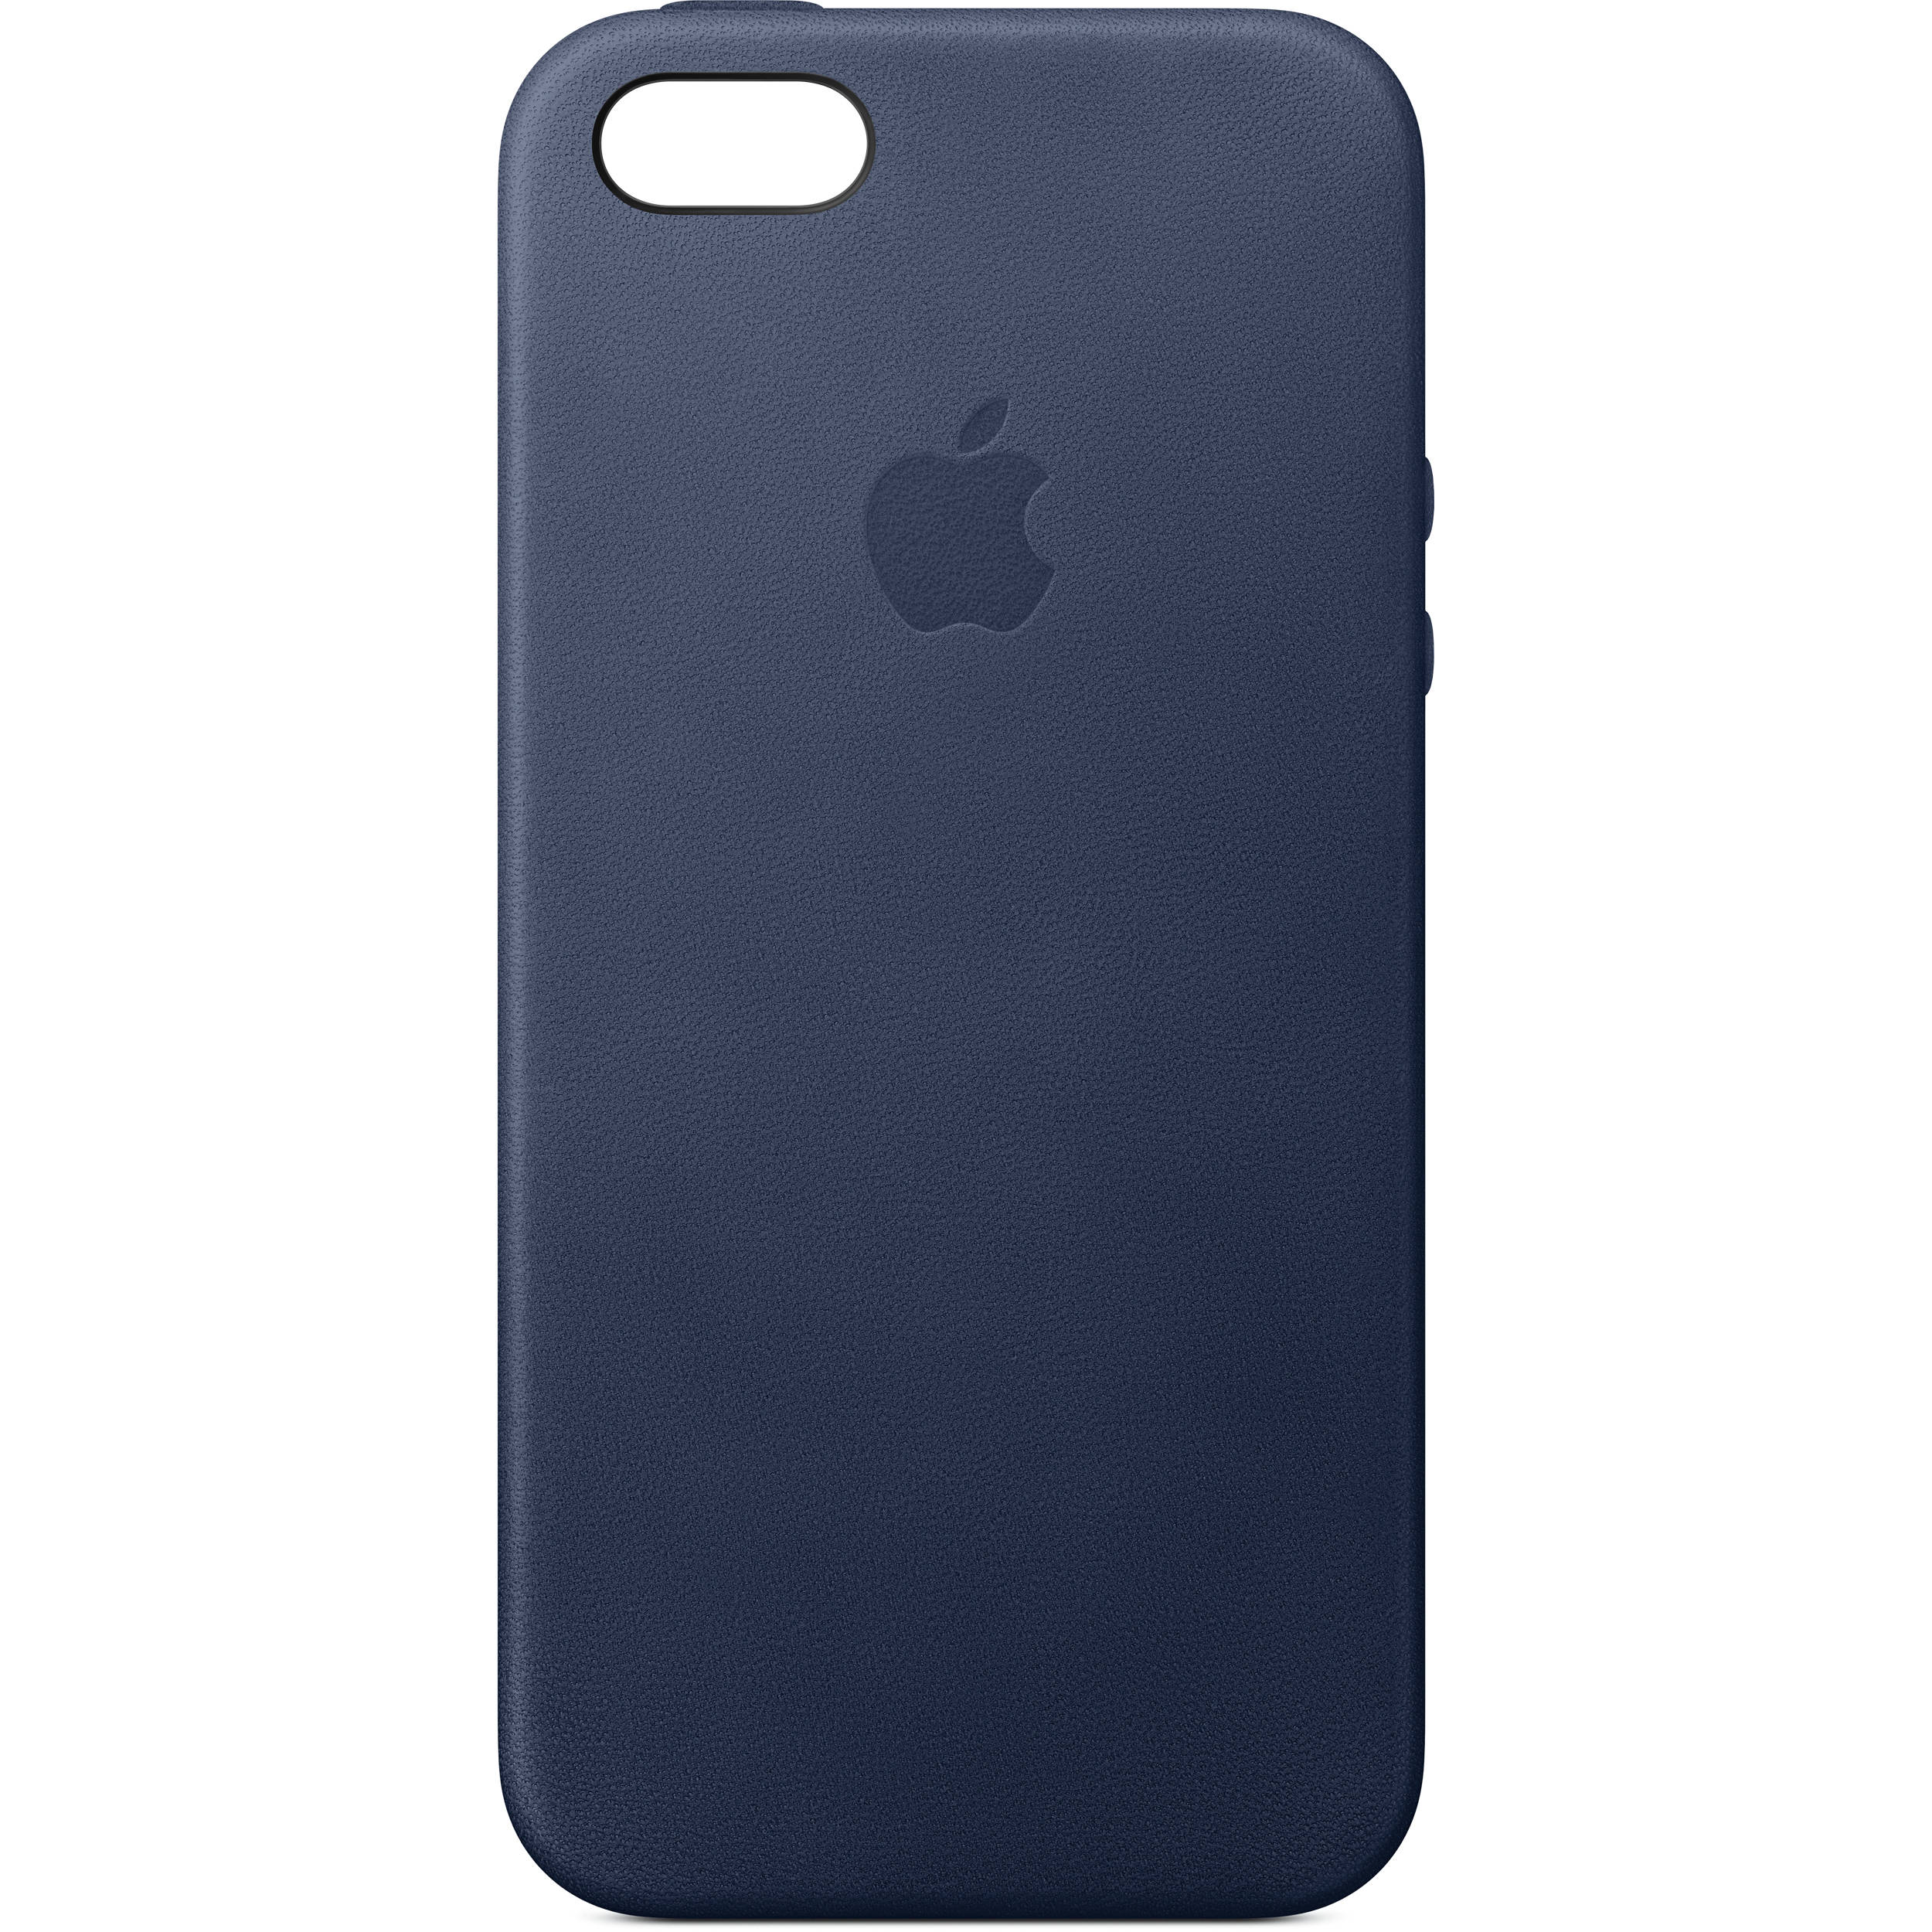 Apple iPhone 5 5s SE Leather Case (Midnight Blue) MMHG2ZM A B H 6a60c0e21